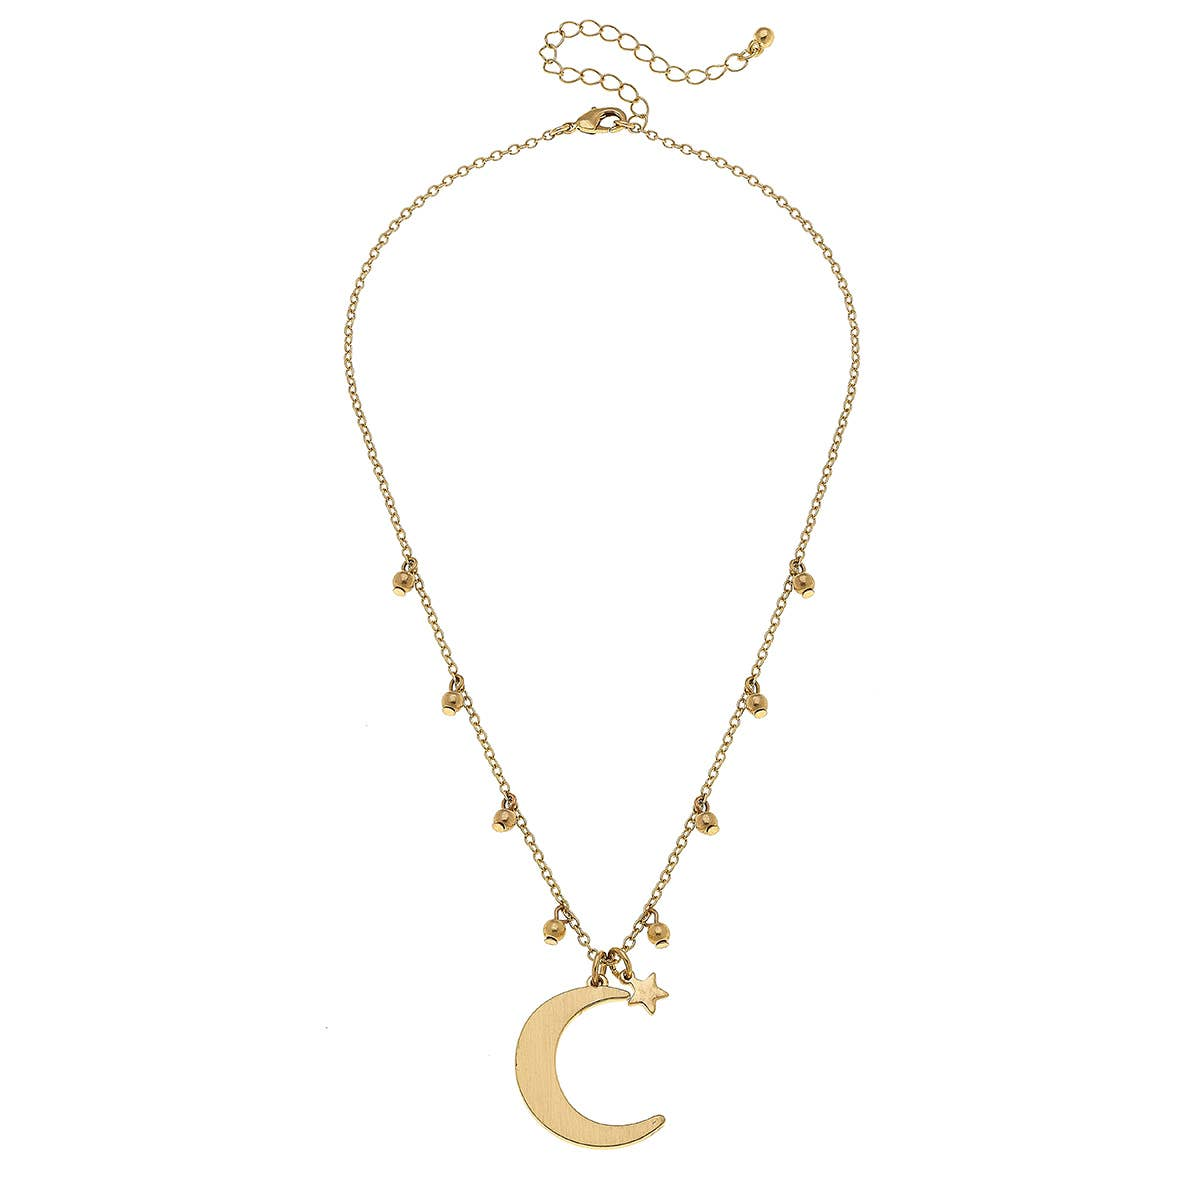 Juliette Moon Necklace in Satin Gold